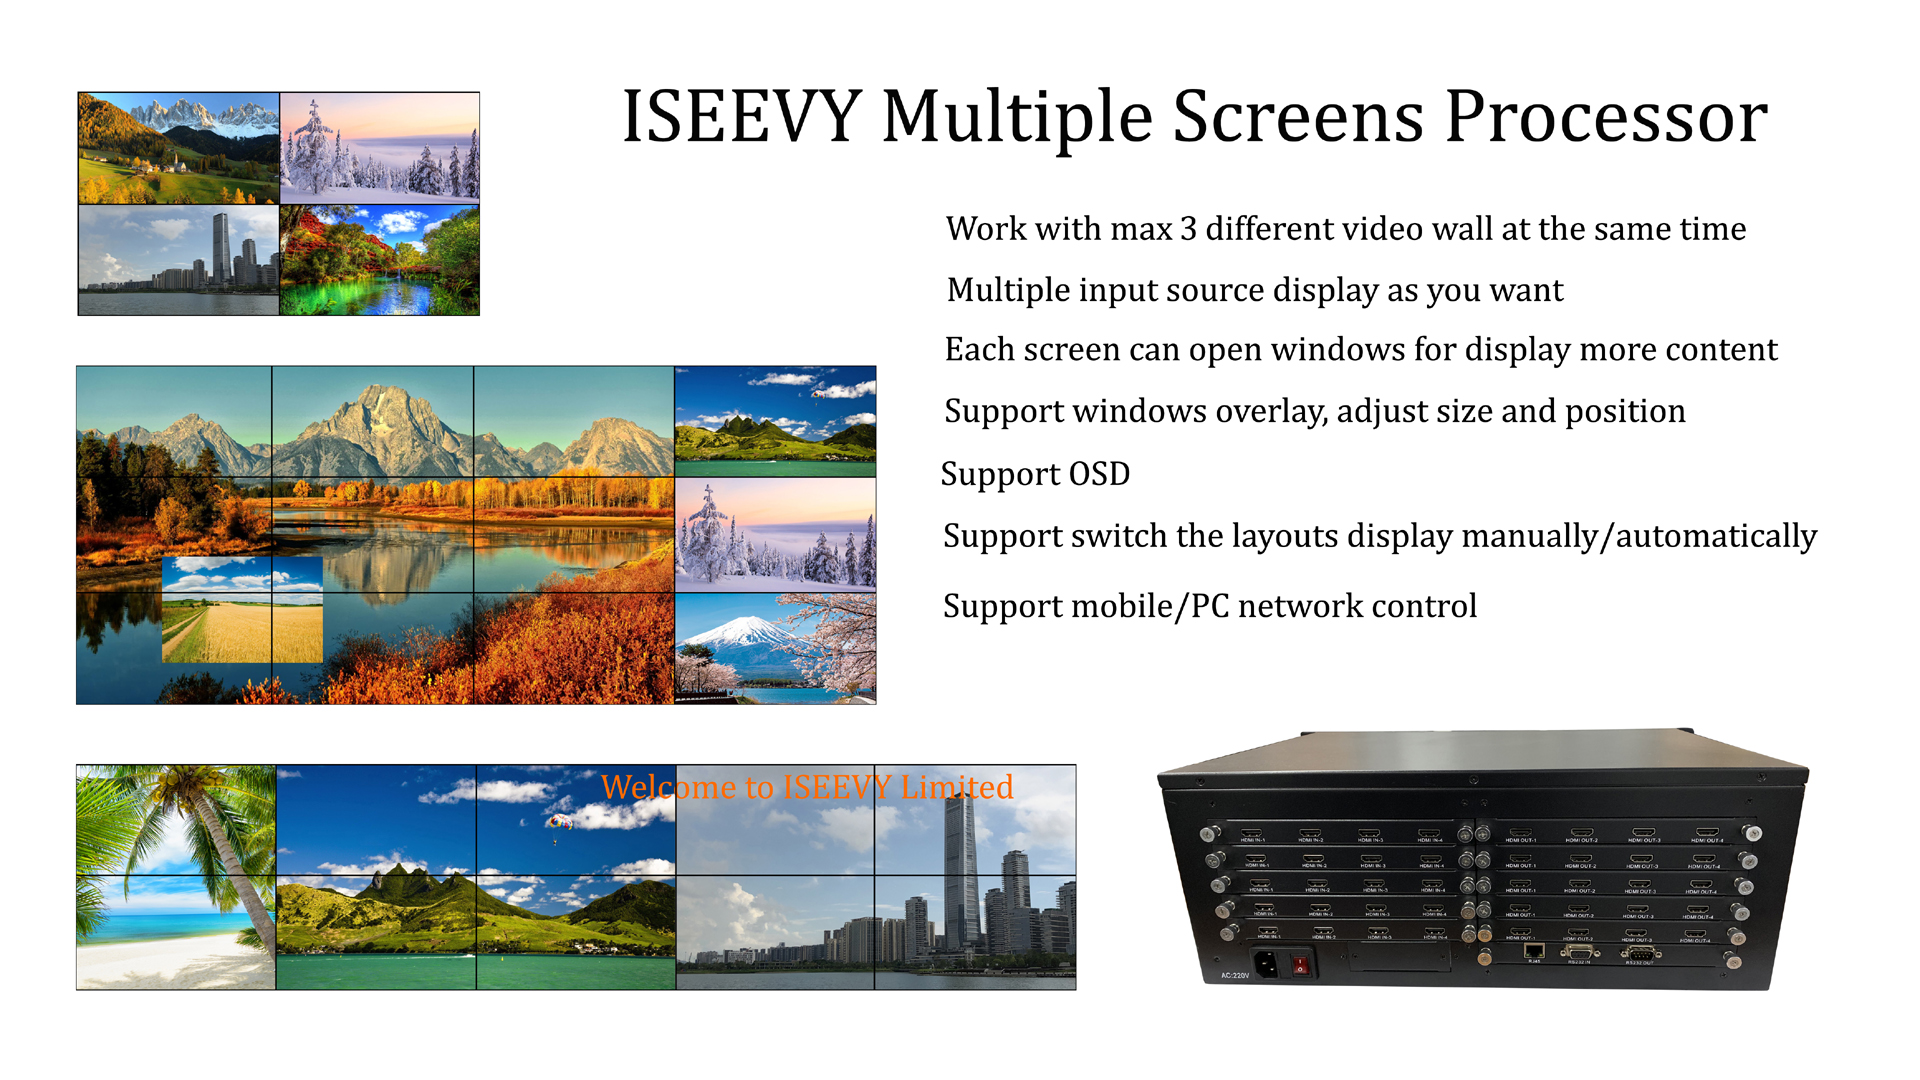 ISEEVY Multiple screens processor for multiple inputs and multiple outputs video wall display